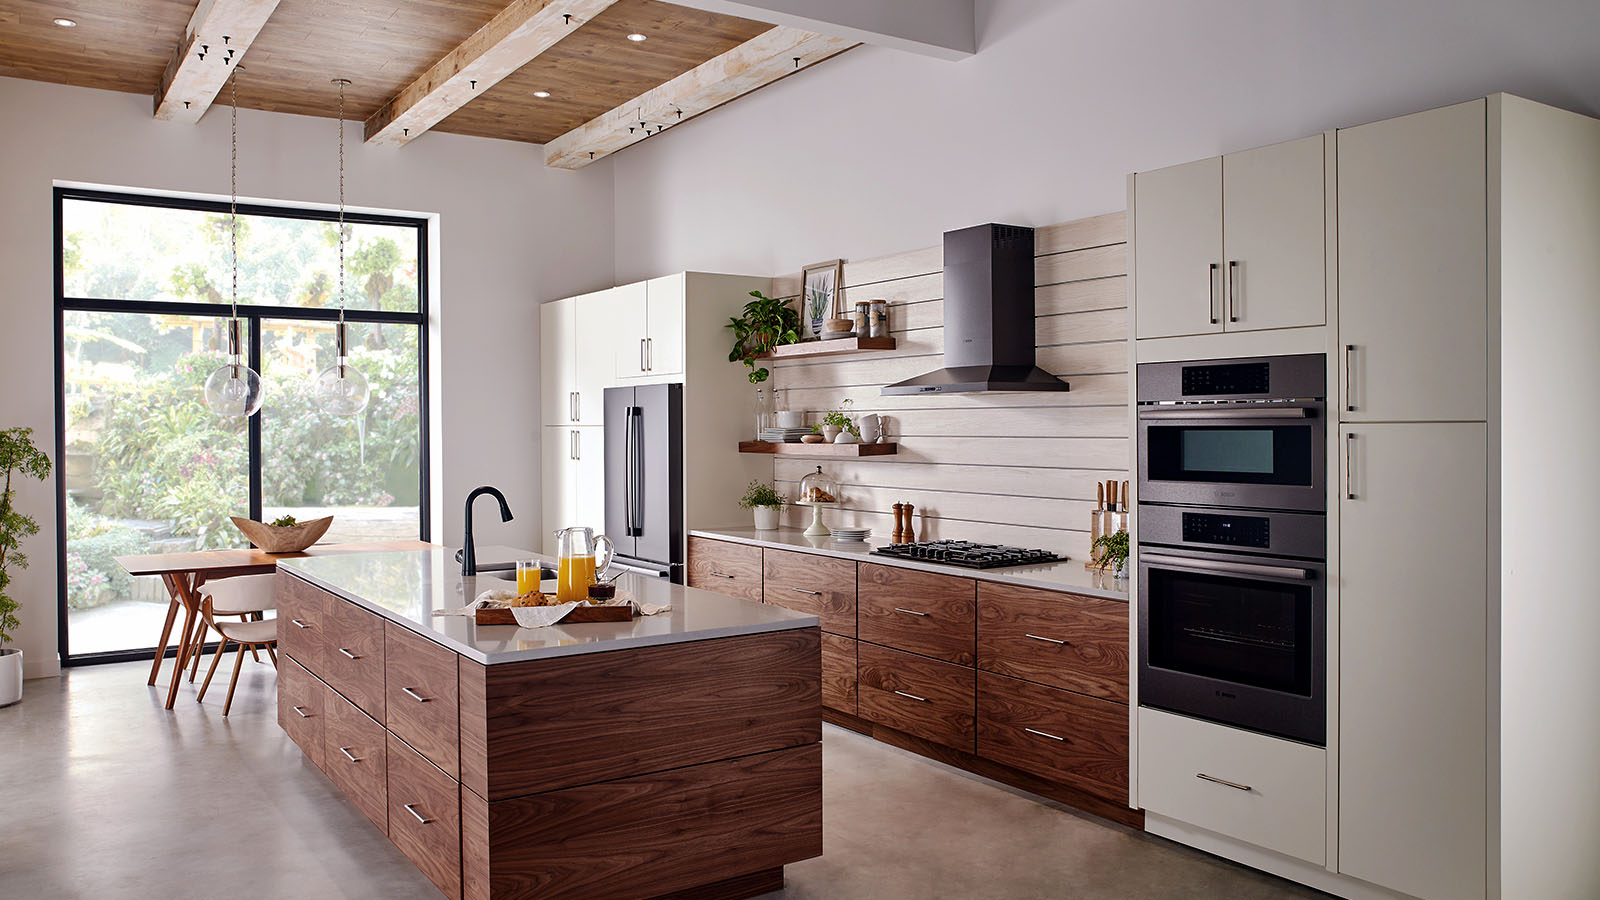 Image of Walnut Kitchen Cabinets